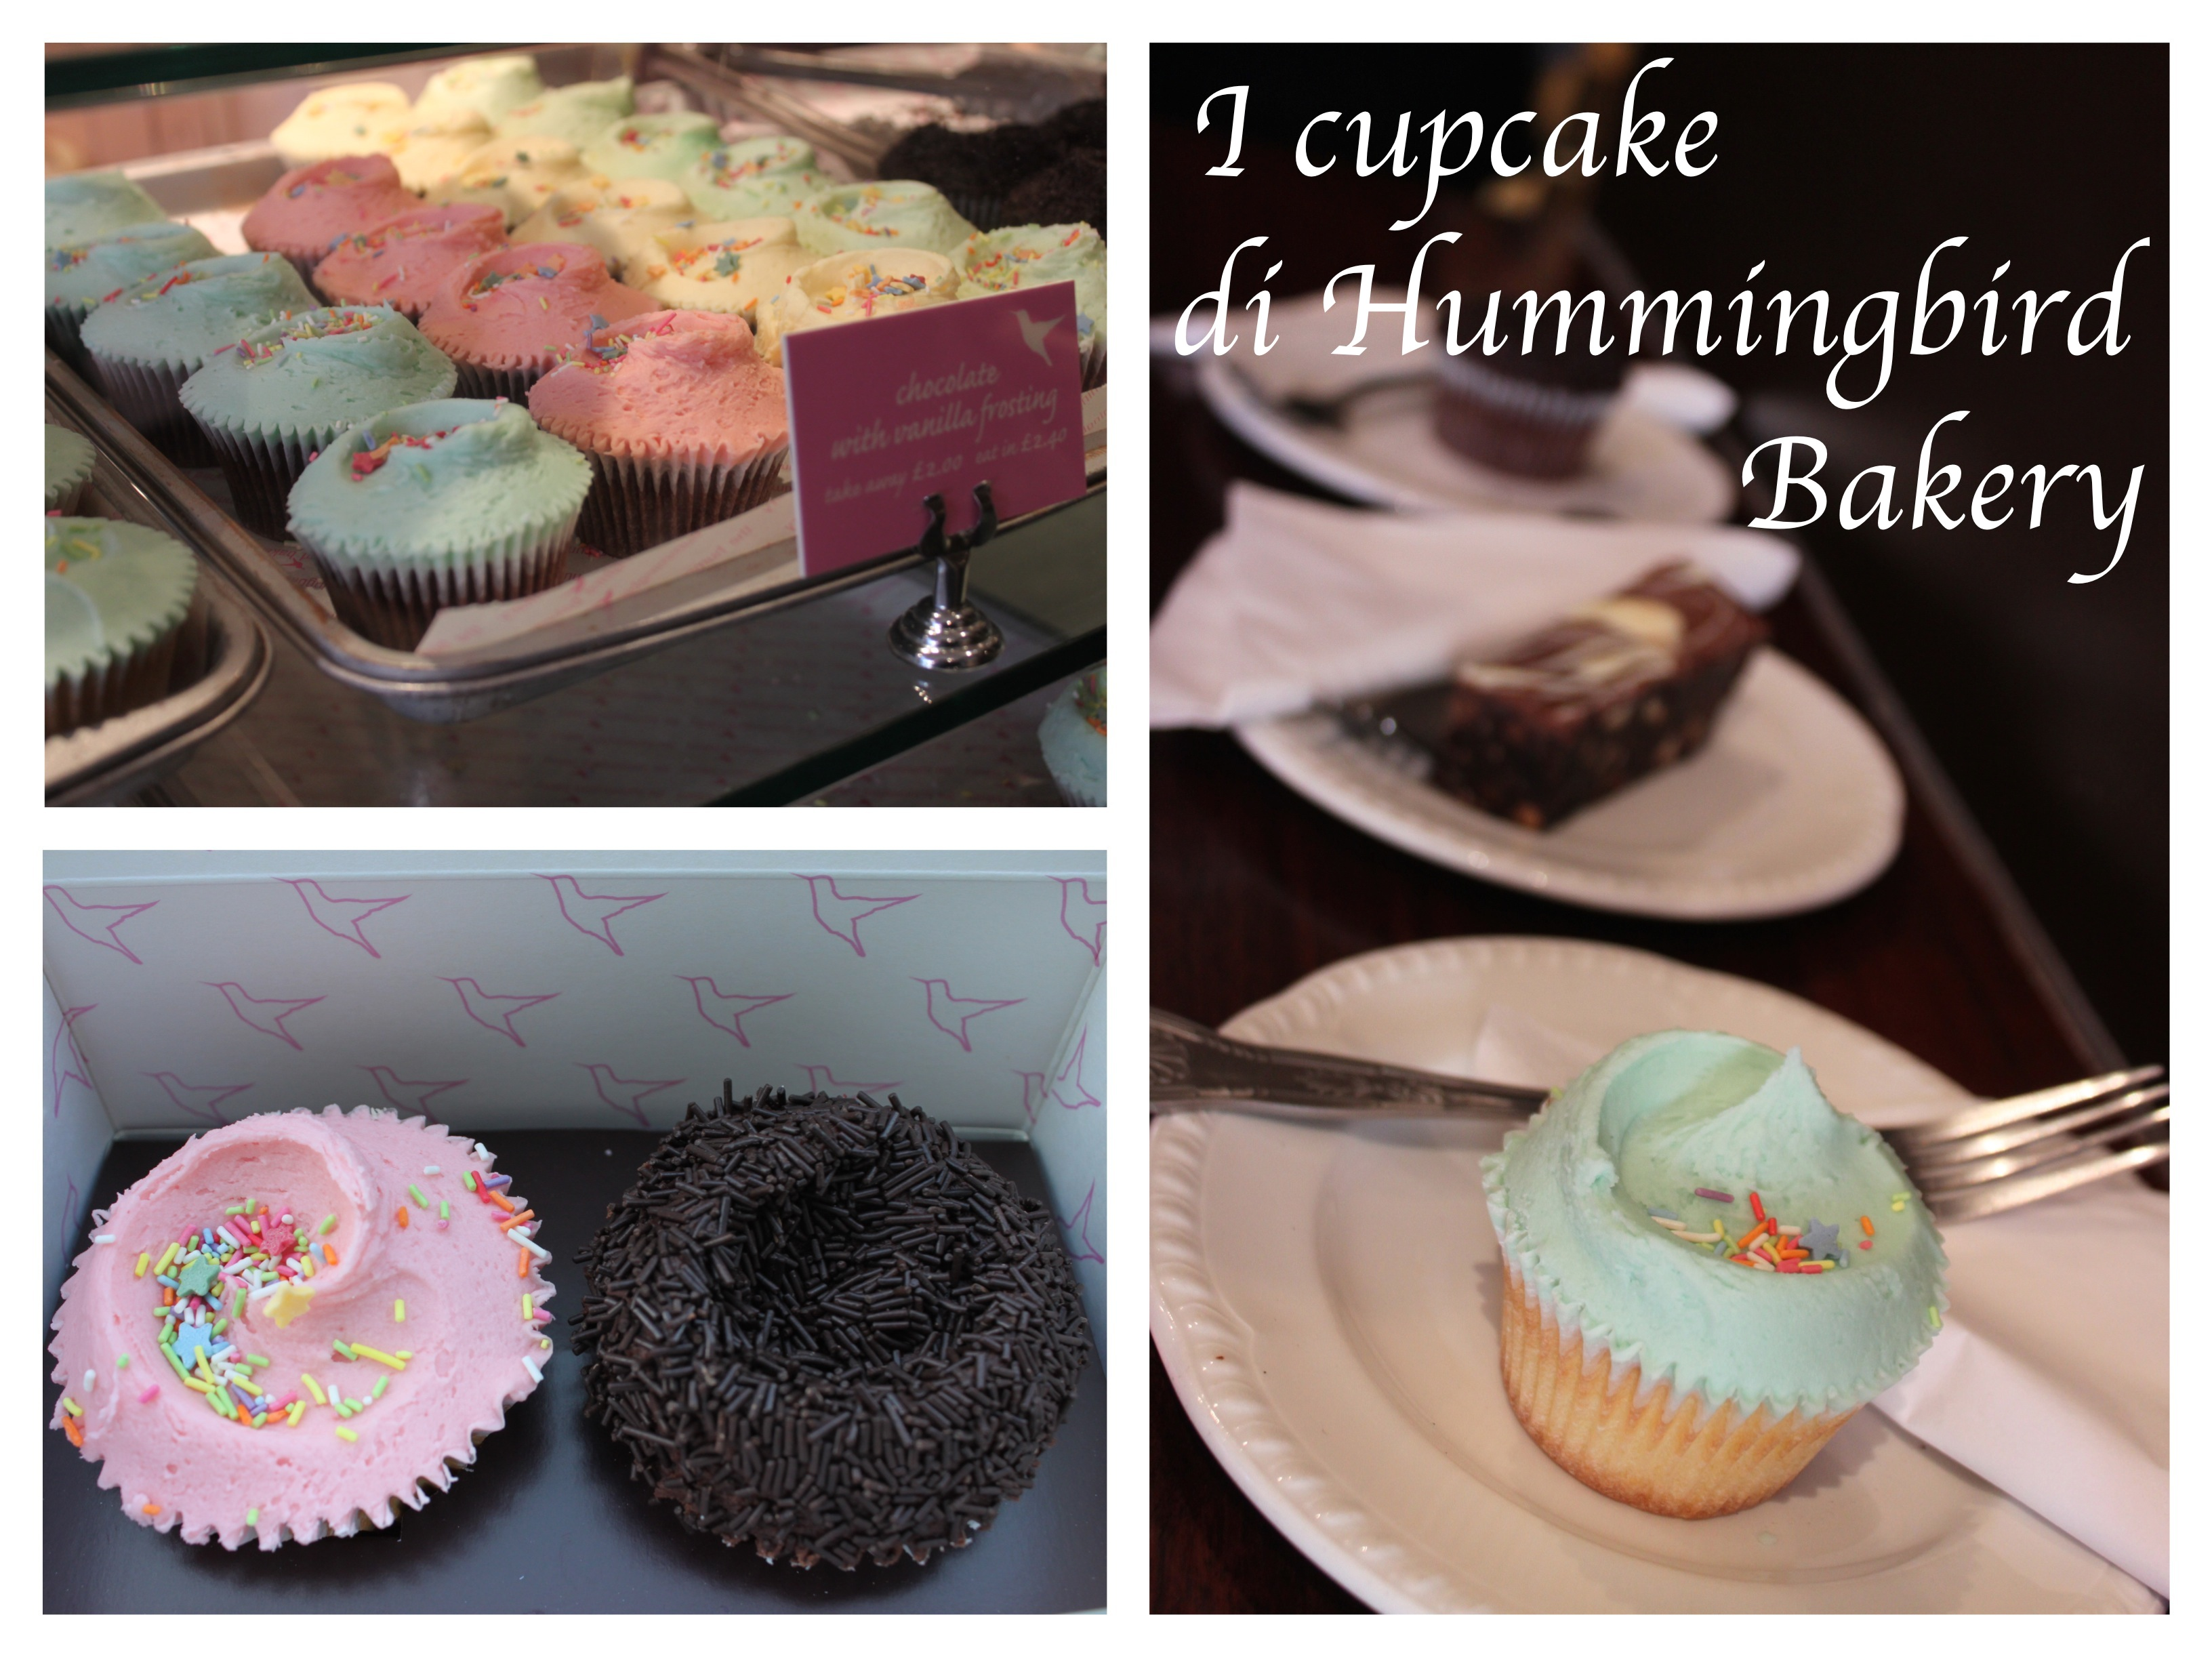 hummingbird bakery london portobello cupcake